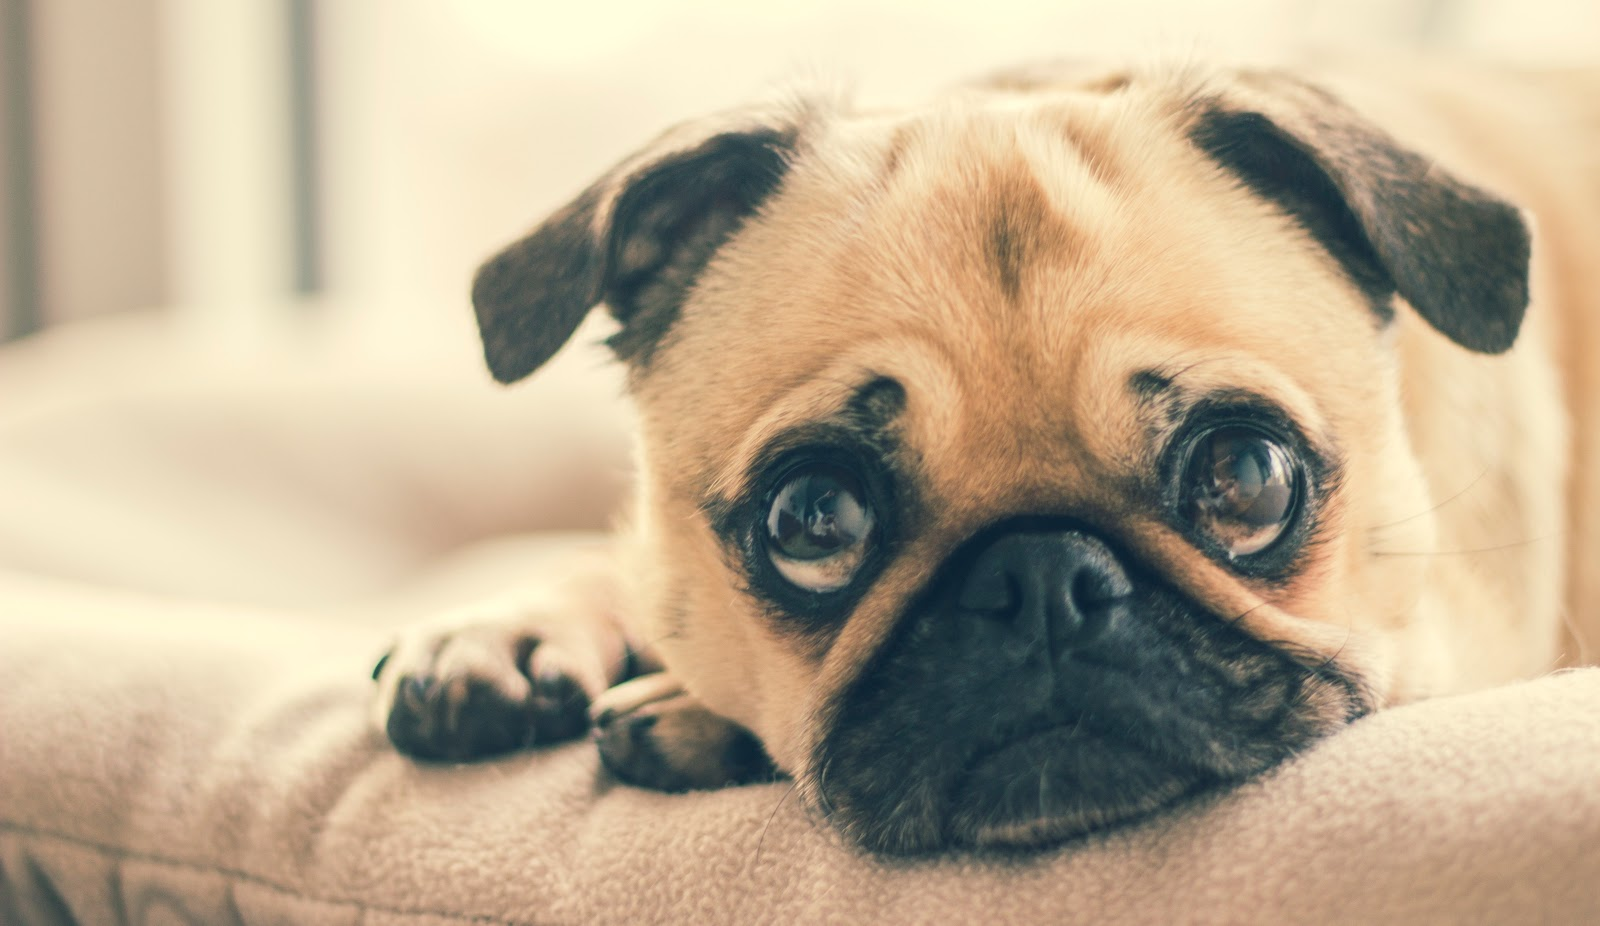 pug with sad face and big eyes